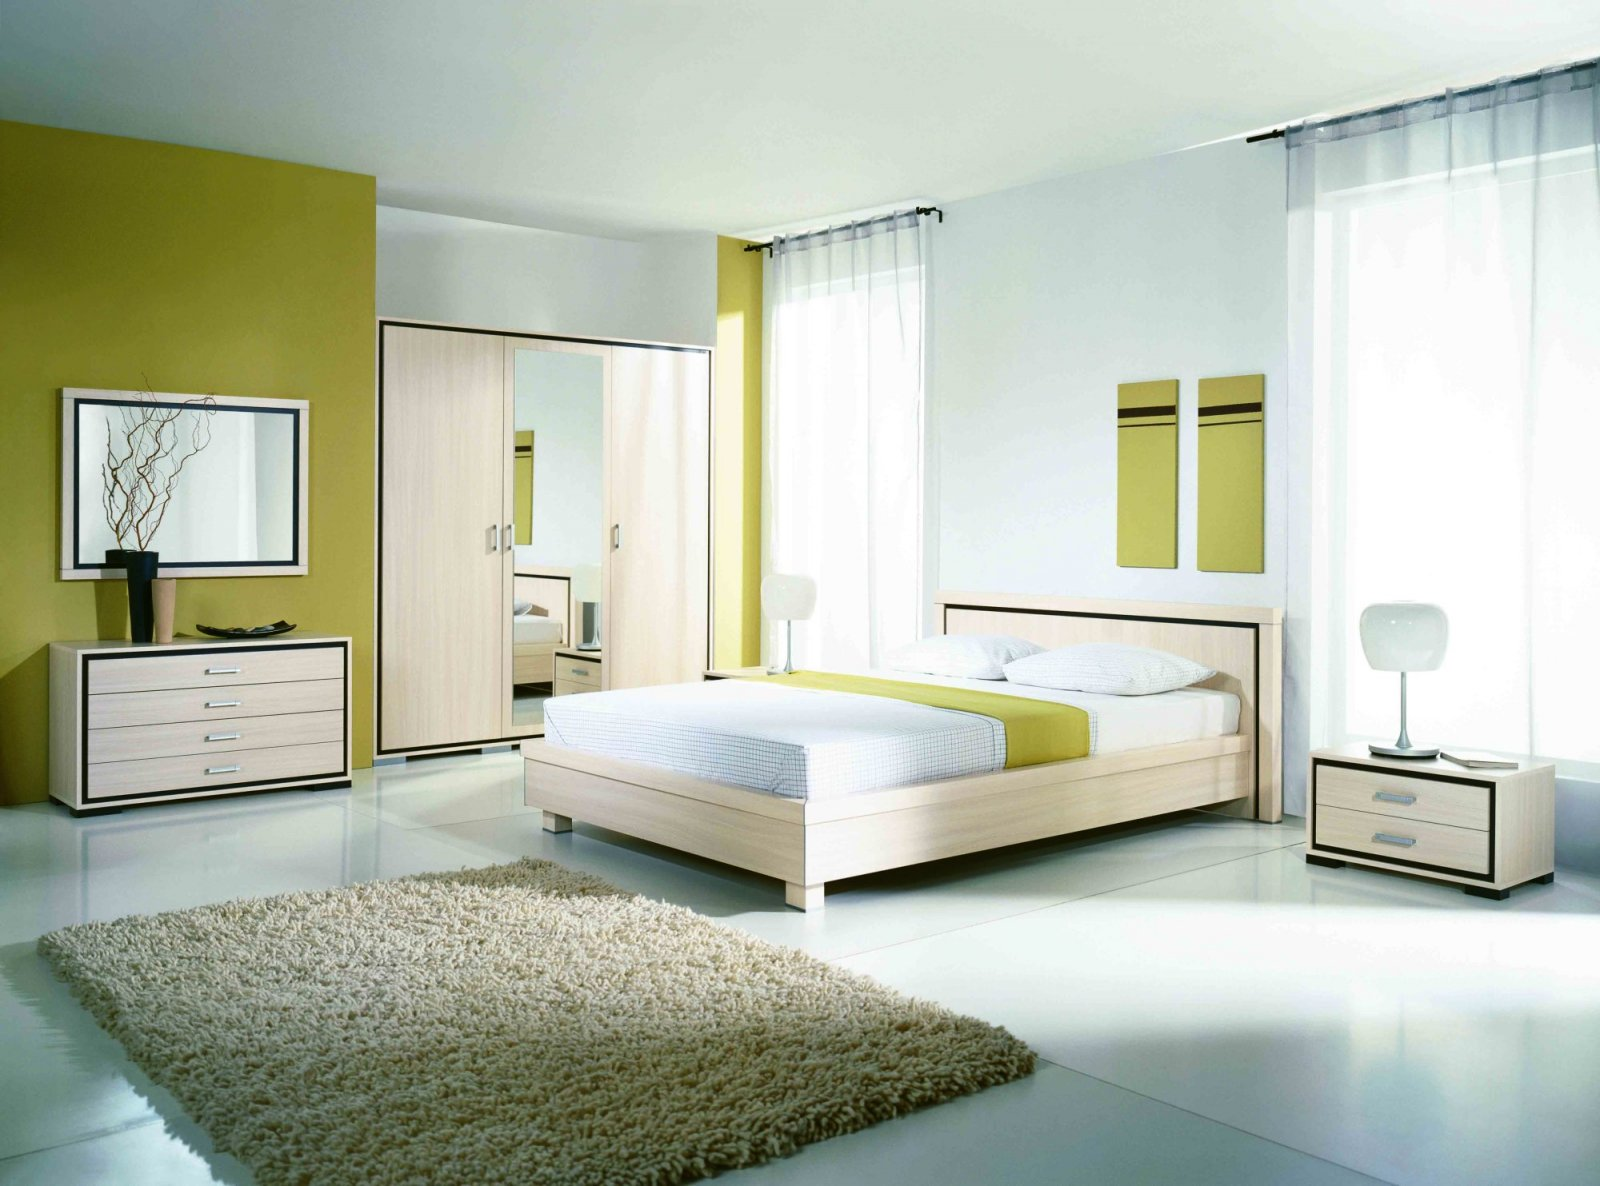 Ideas para agrandar una habitaci n decoraci n del hogar for Dormitorio simple